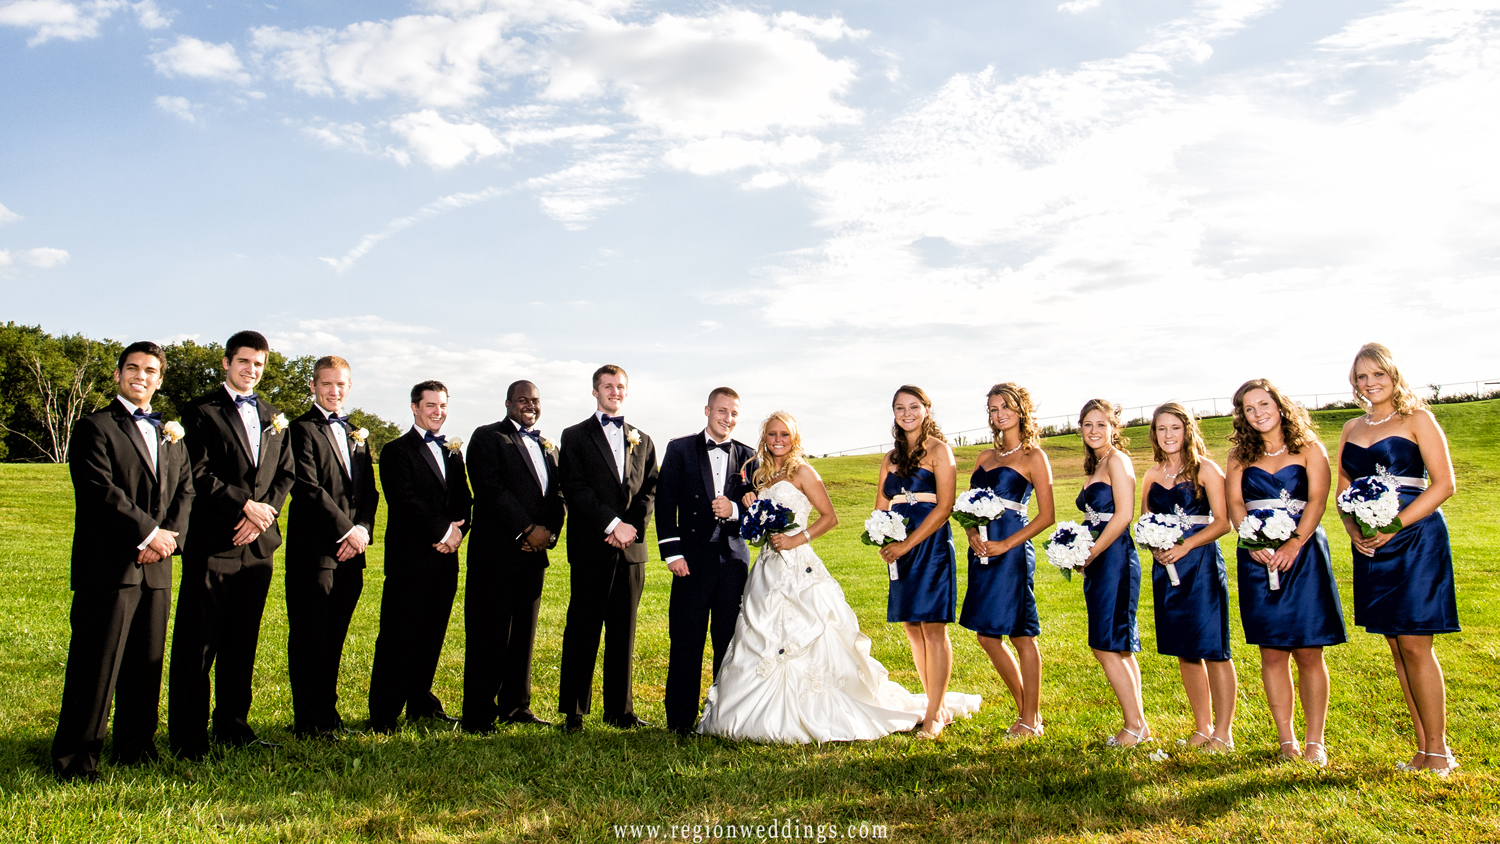 The wedding party poses in front of the large sled hill at Oak Ridge Prairie County Park in Indiana.